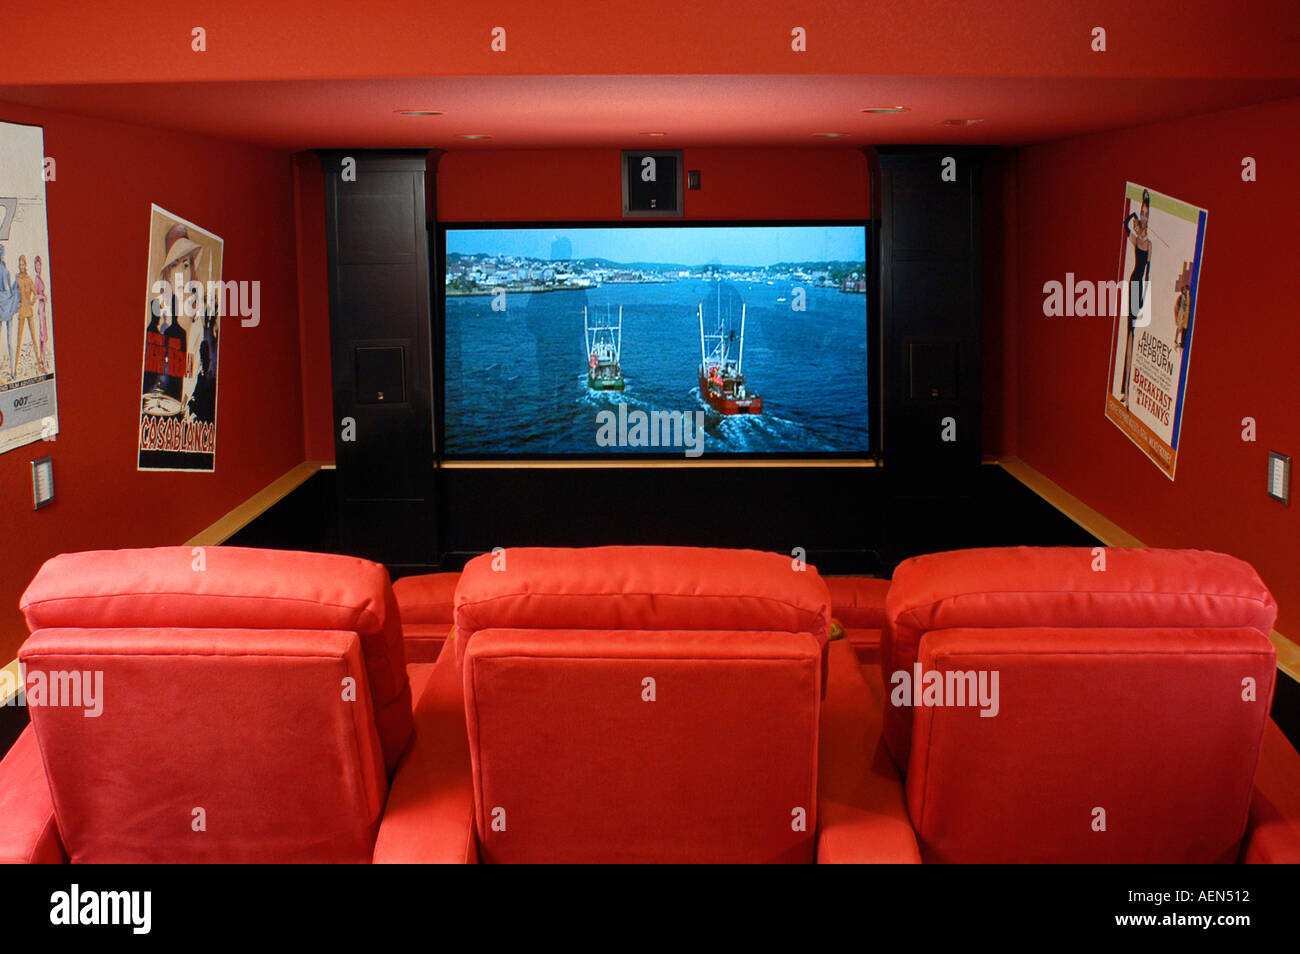 Reclining Chair Movie Theater Luxury Home Movie Theater And Screen Red Recliner Chairs Stock